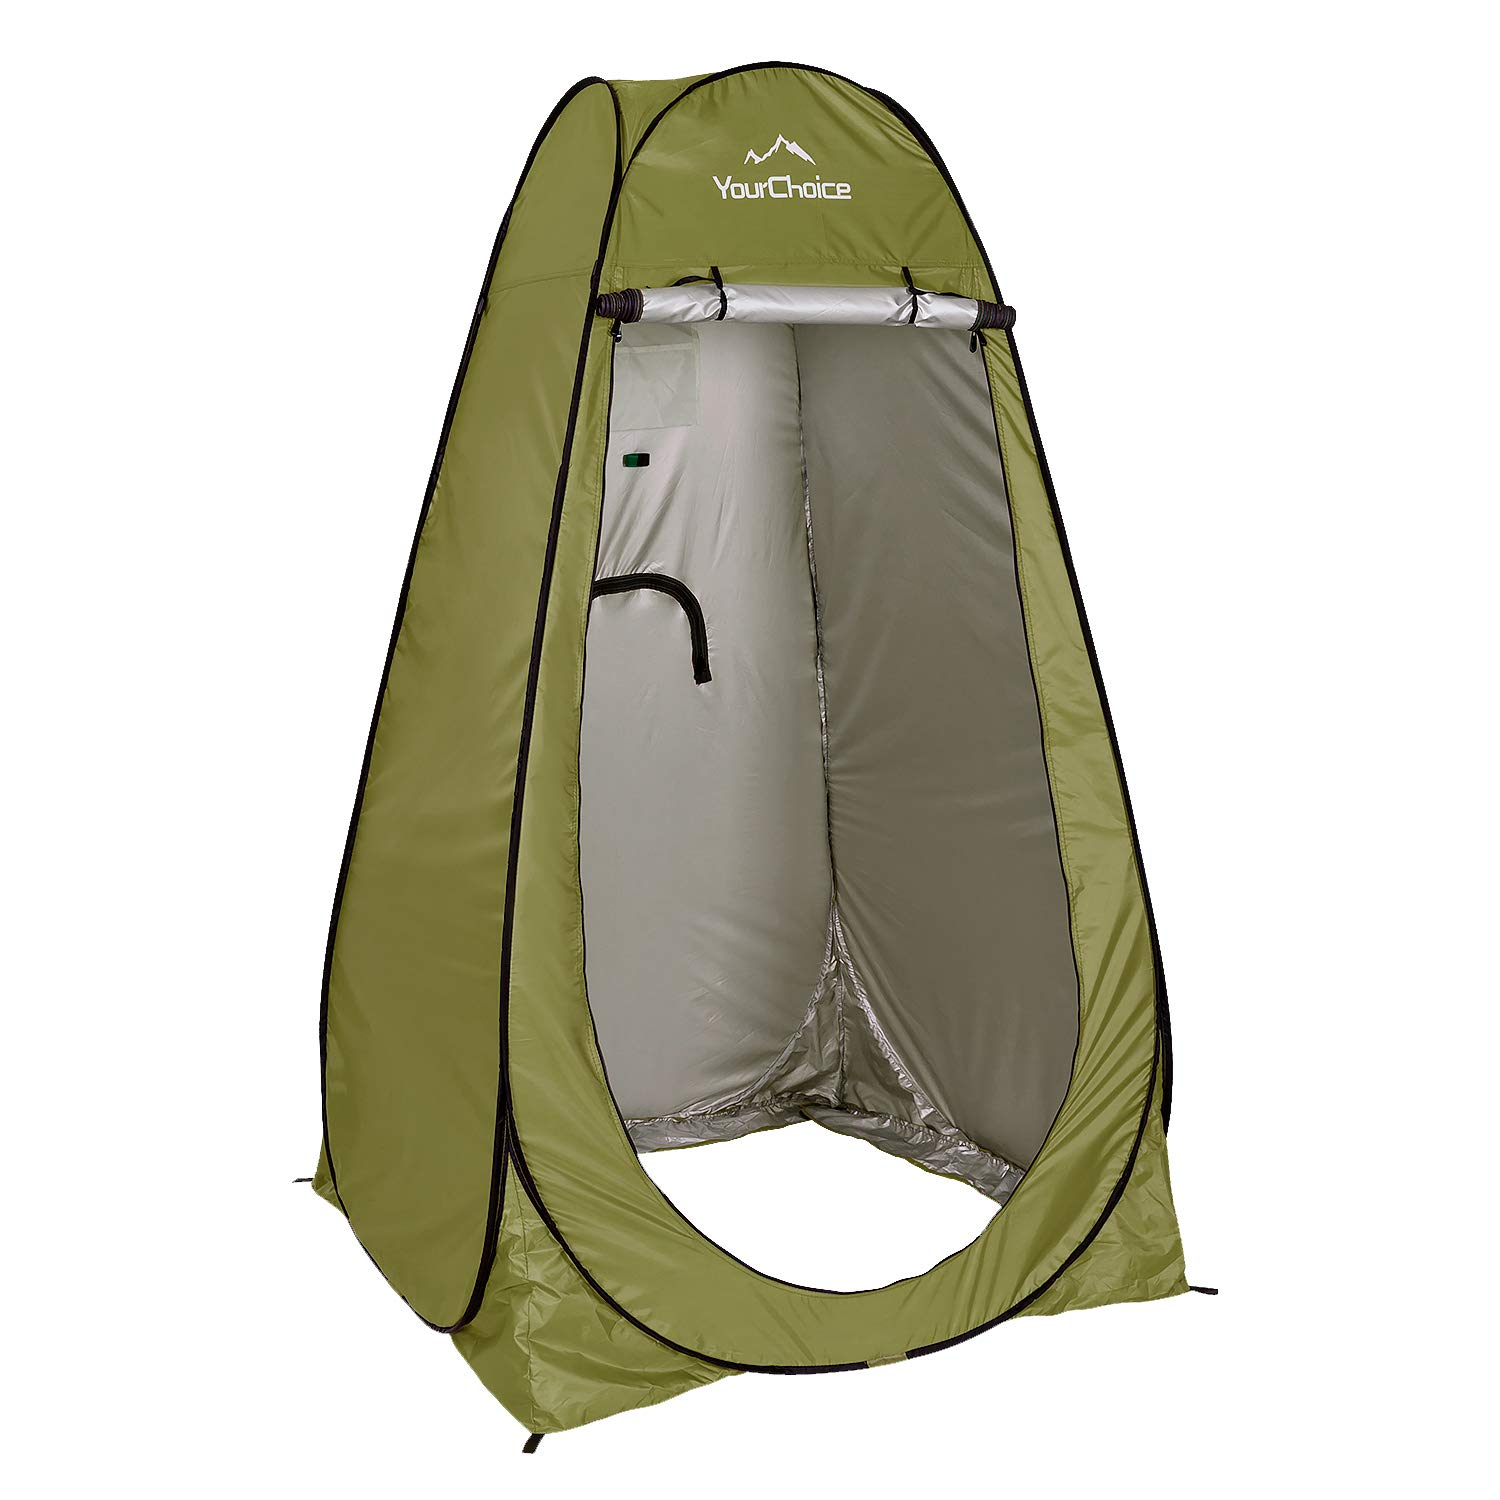 Your Choice Pop Up Camping Shower Tent, Portable Changing Room Camp Shower Toilet Privacy shelter Tents for Outdoor and Indoor, 6.2FT Tall - Color Green by Your Choice